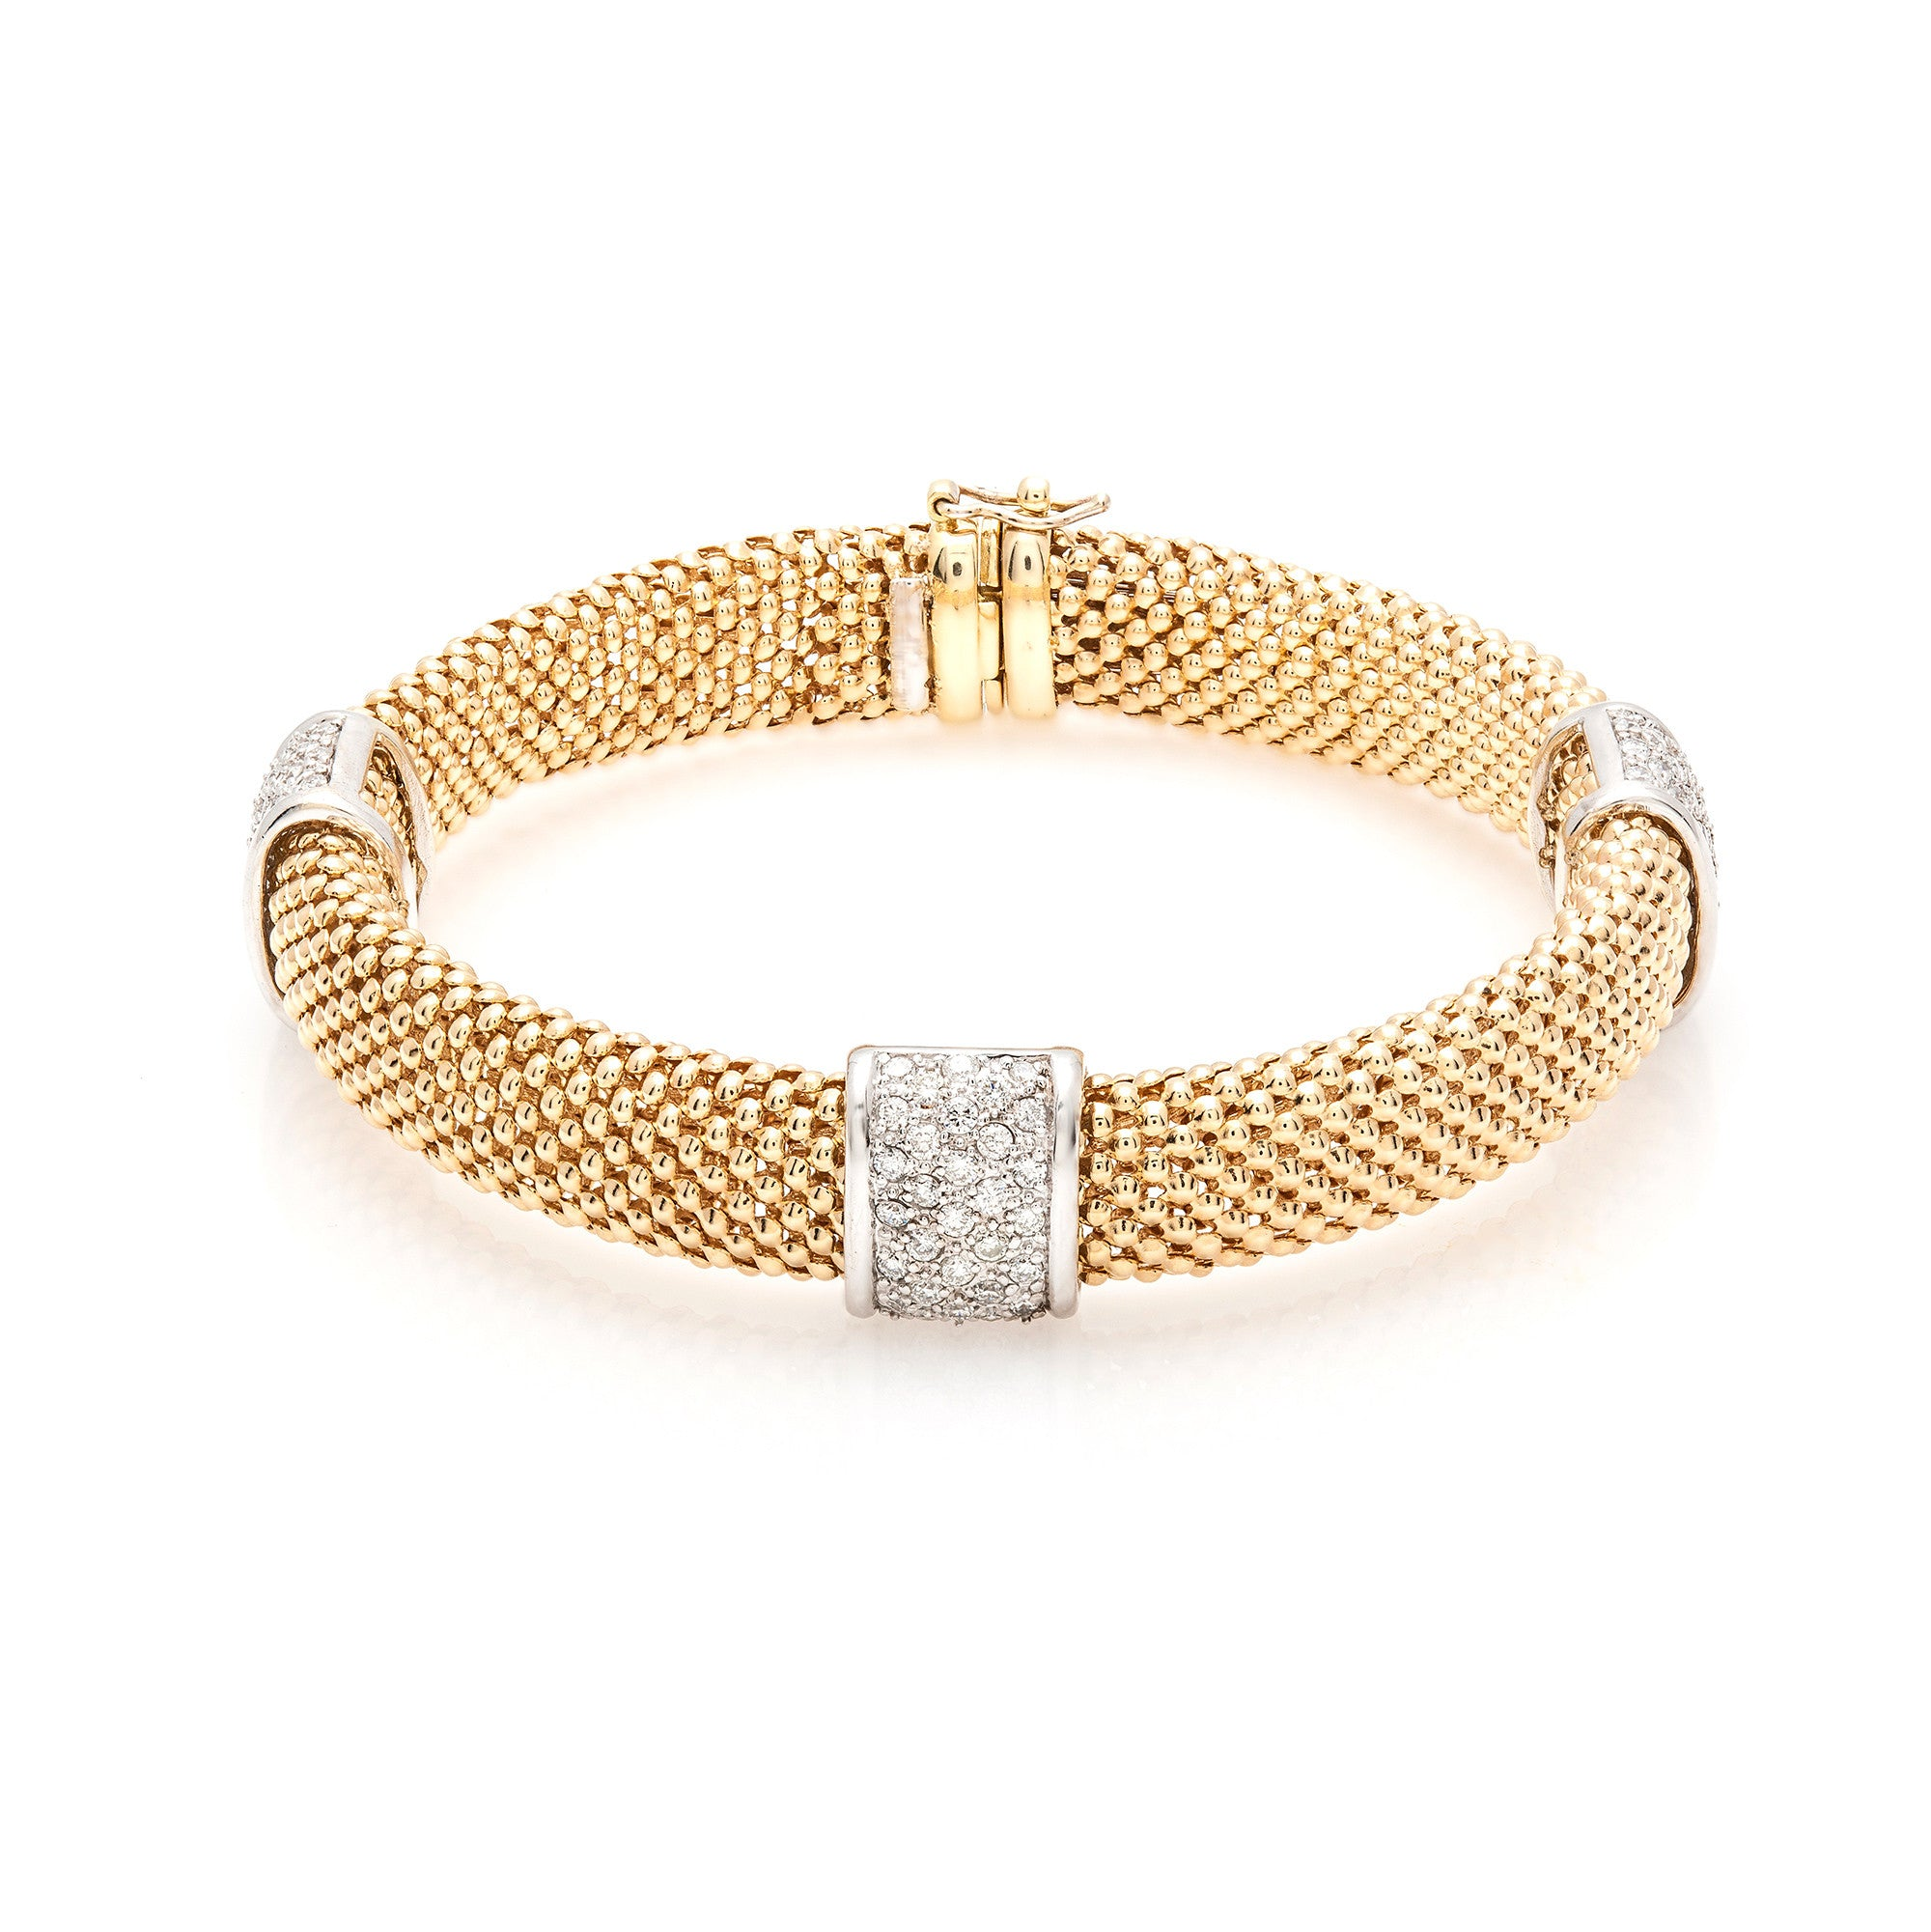 bangles gold bangle yurman jewelry diamond white cable bracelet edition pave limited david